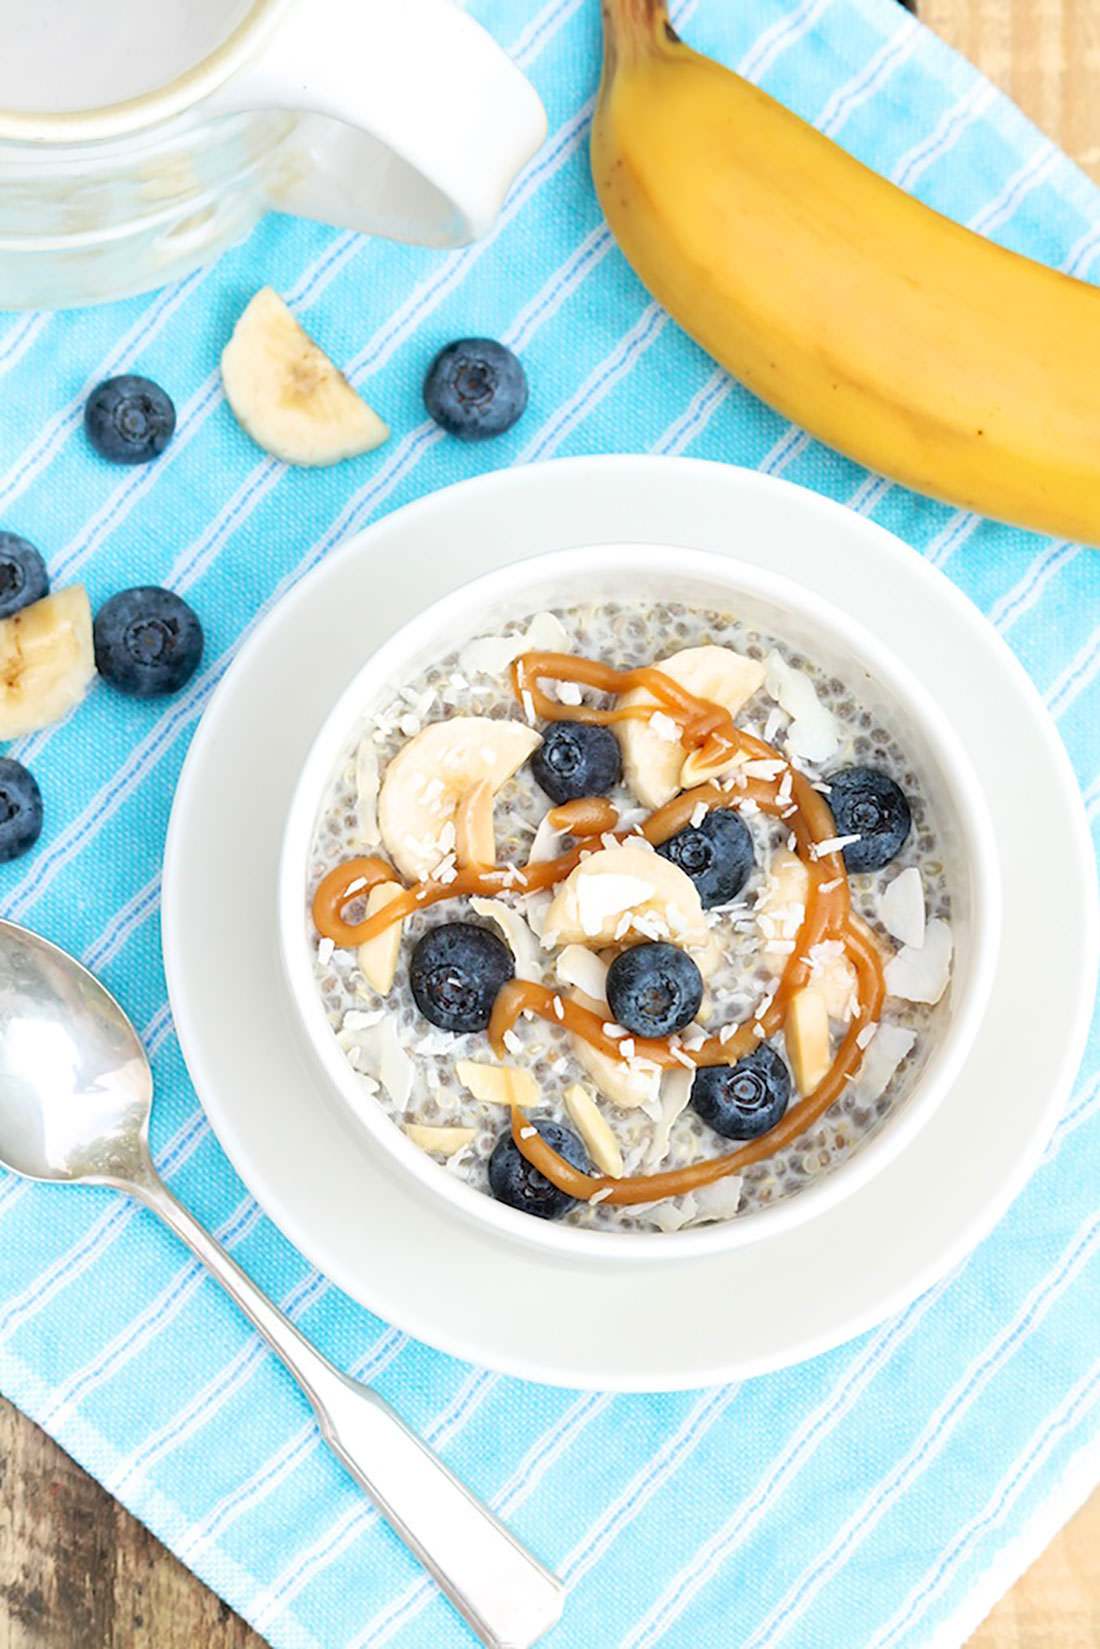 Honey Nut Quinoa Breakfast Bowl